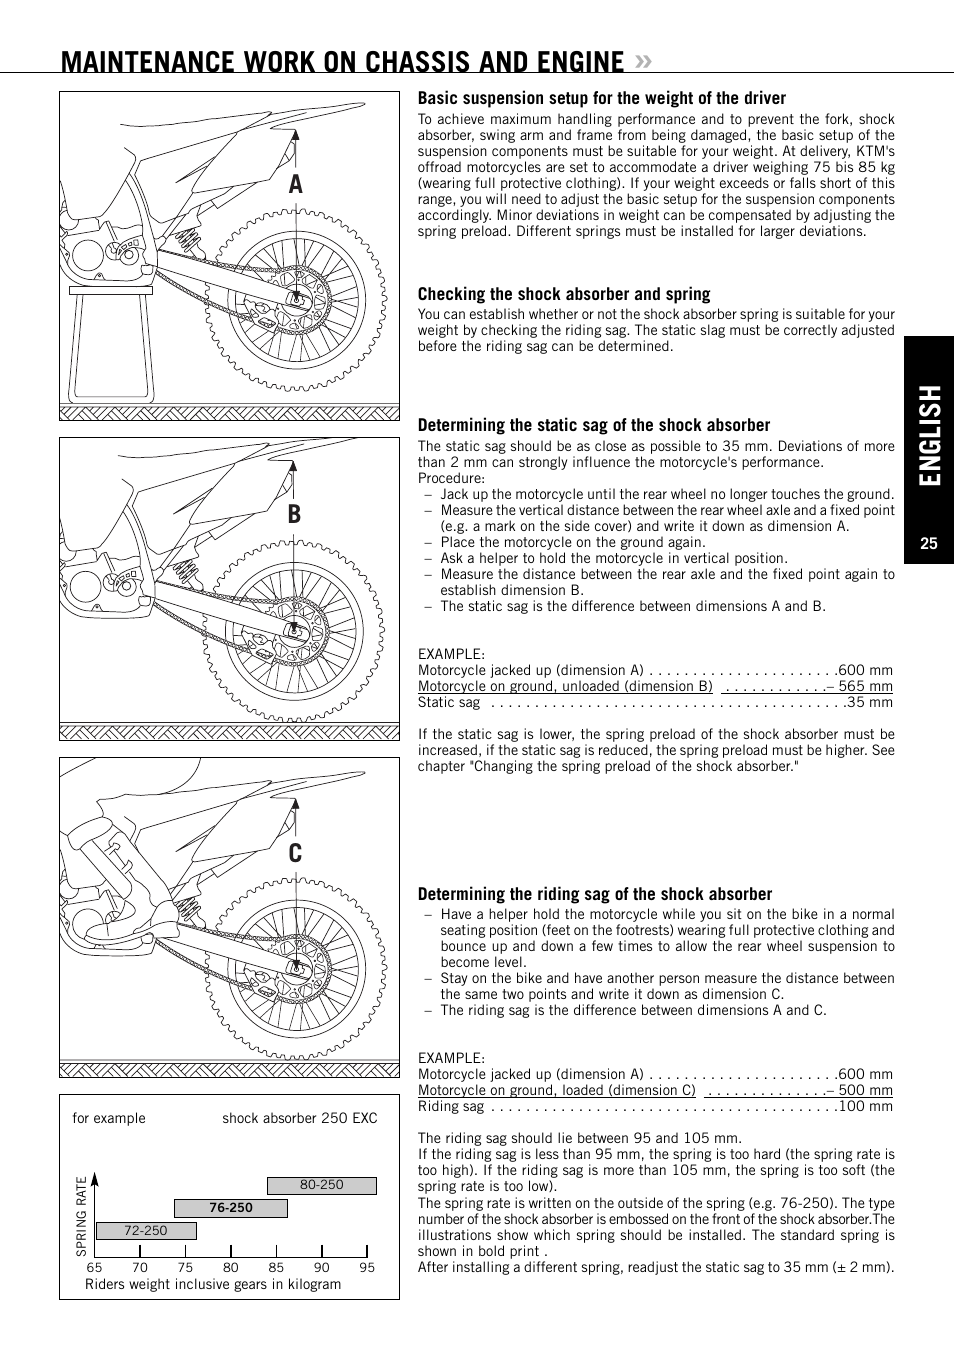 English Maintenance Work On Chassis And Engine Ab C Ktm Exc 200 250 Diagram Xc